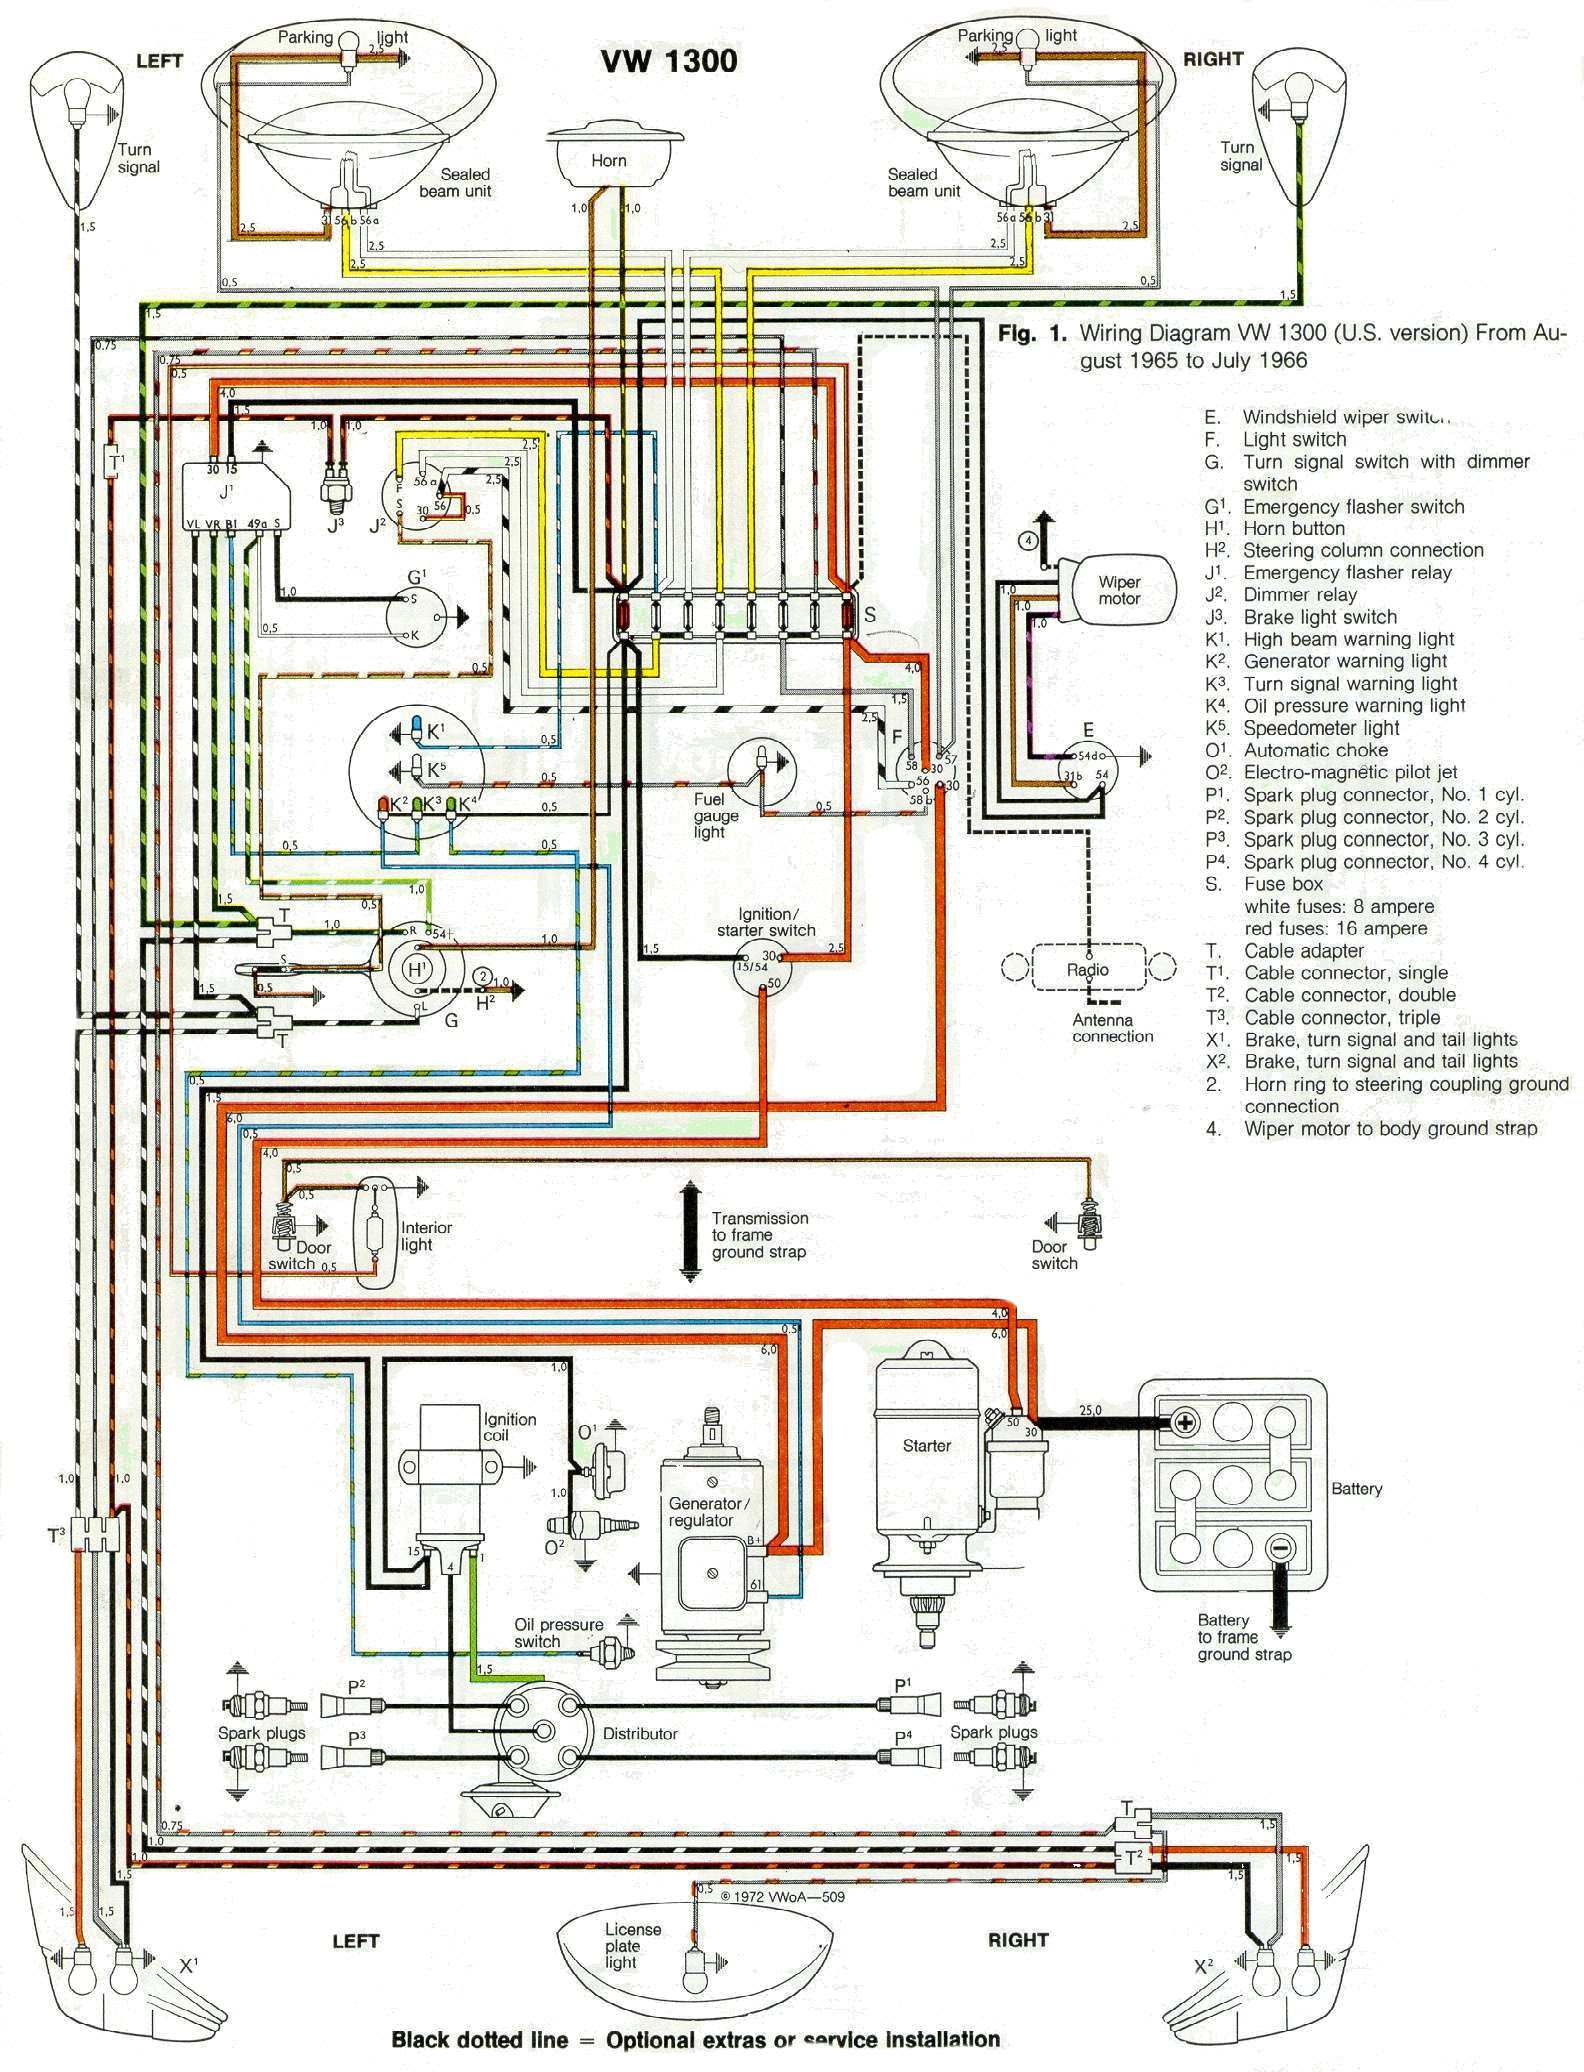 69 Vw Beetle Wiring Diagram Wiring Diagram Local A Local A Maceratadoc It